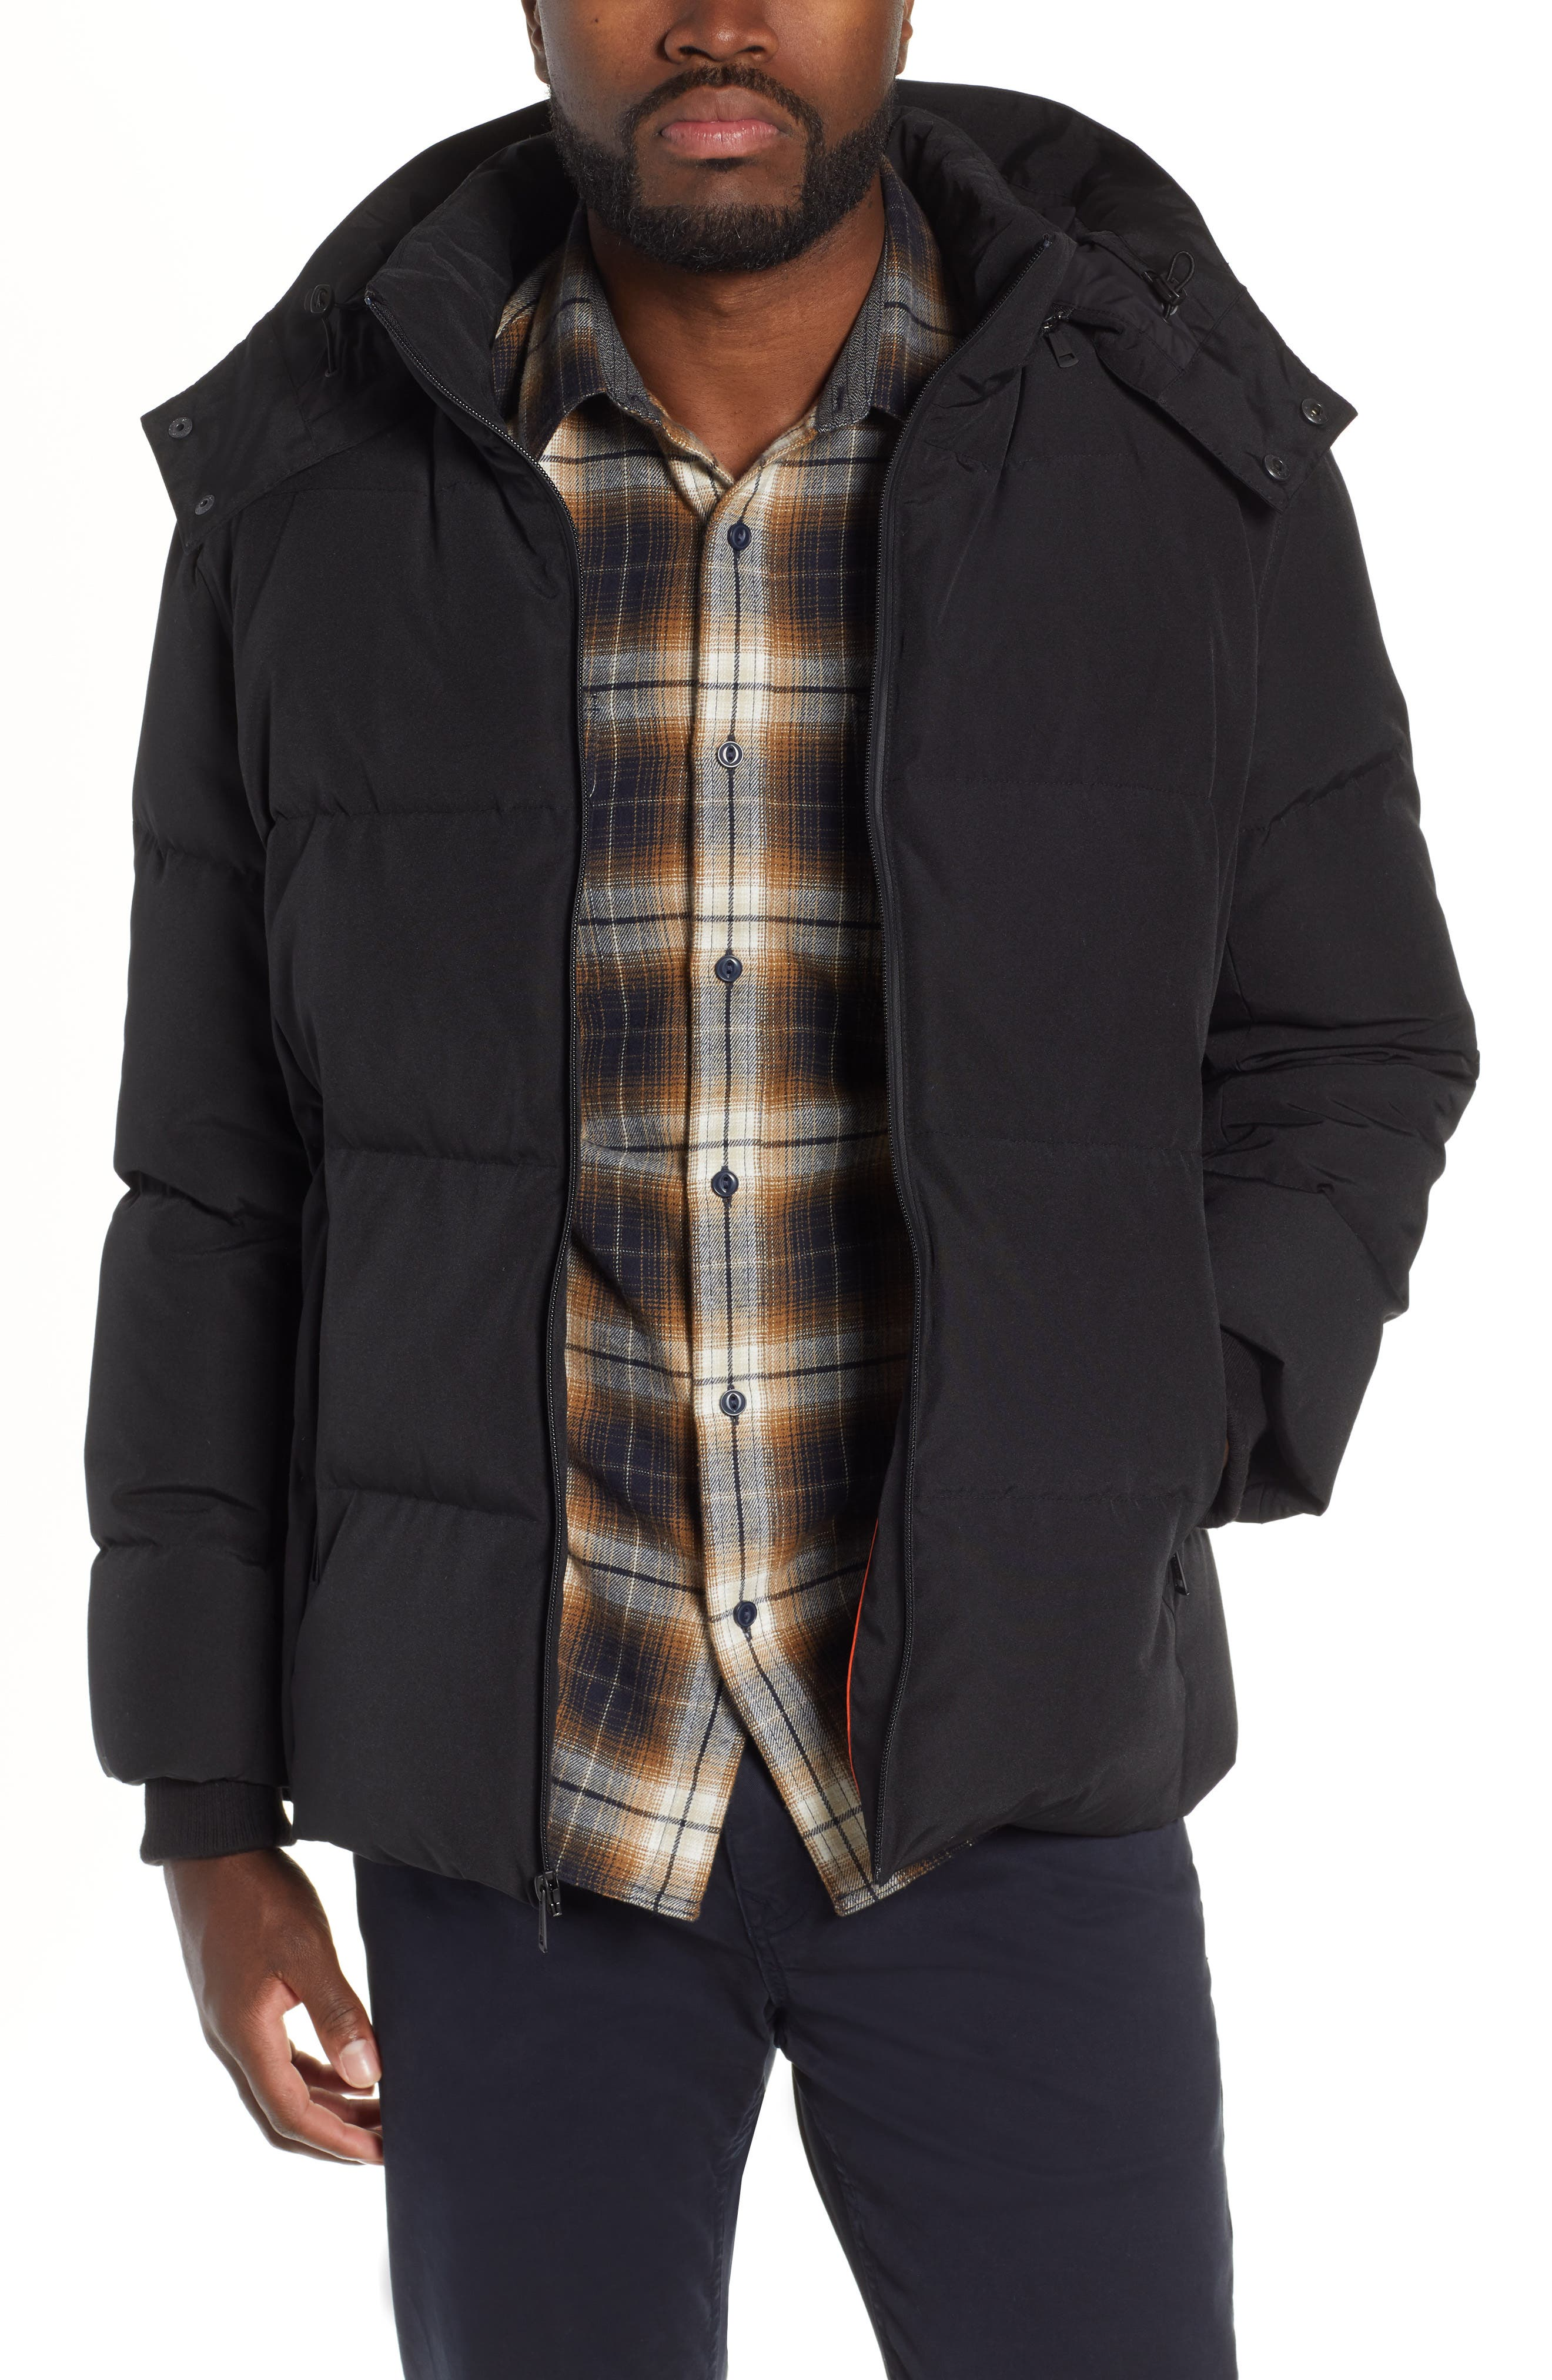 Cole Haan Signature Hooded Puffer Jacket, Black